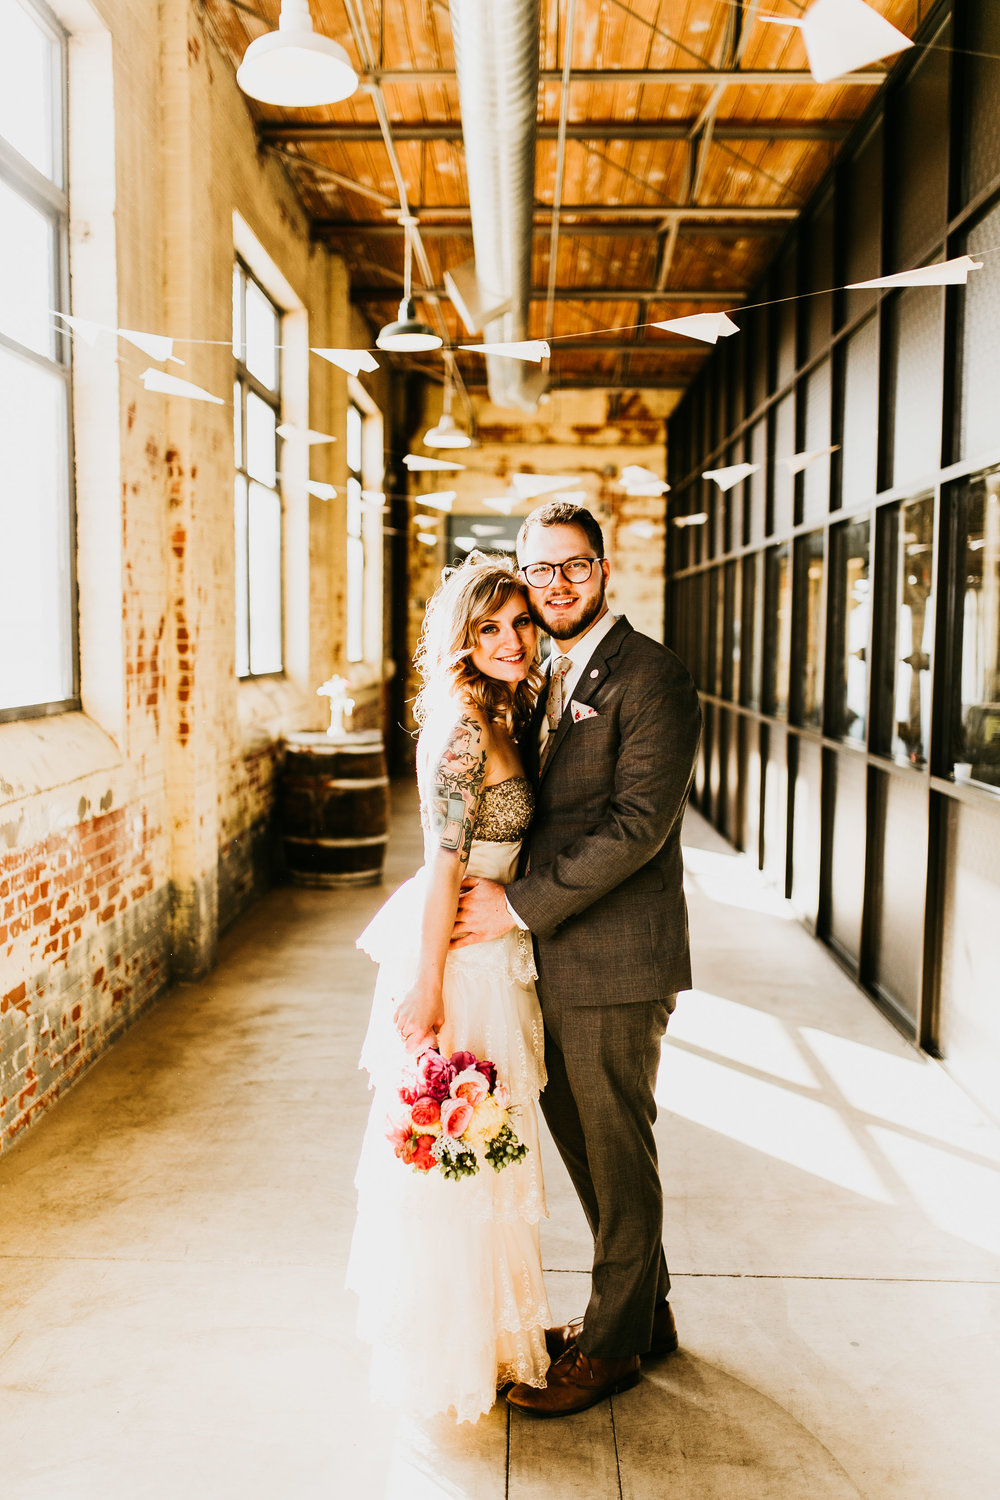 All wedding  and engagemnt photos taken by wedding photography wizard,  Courtney Smith Photography.